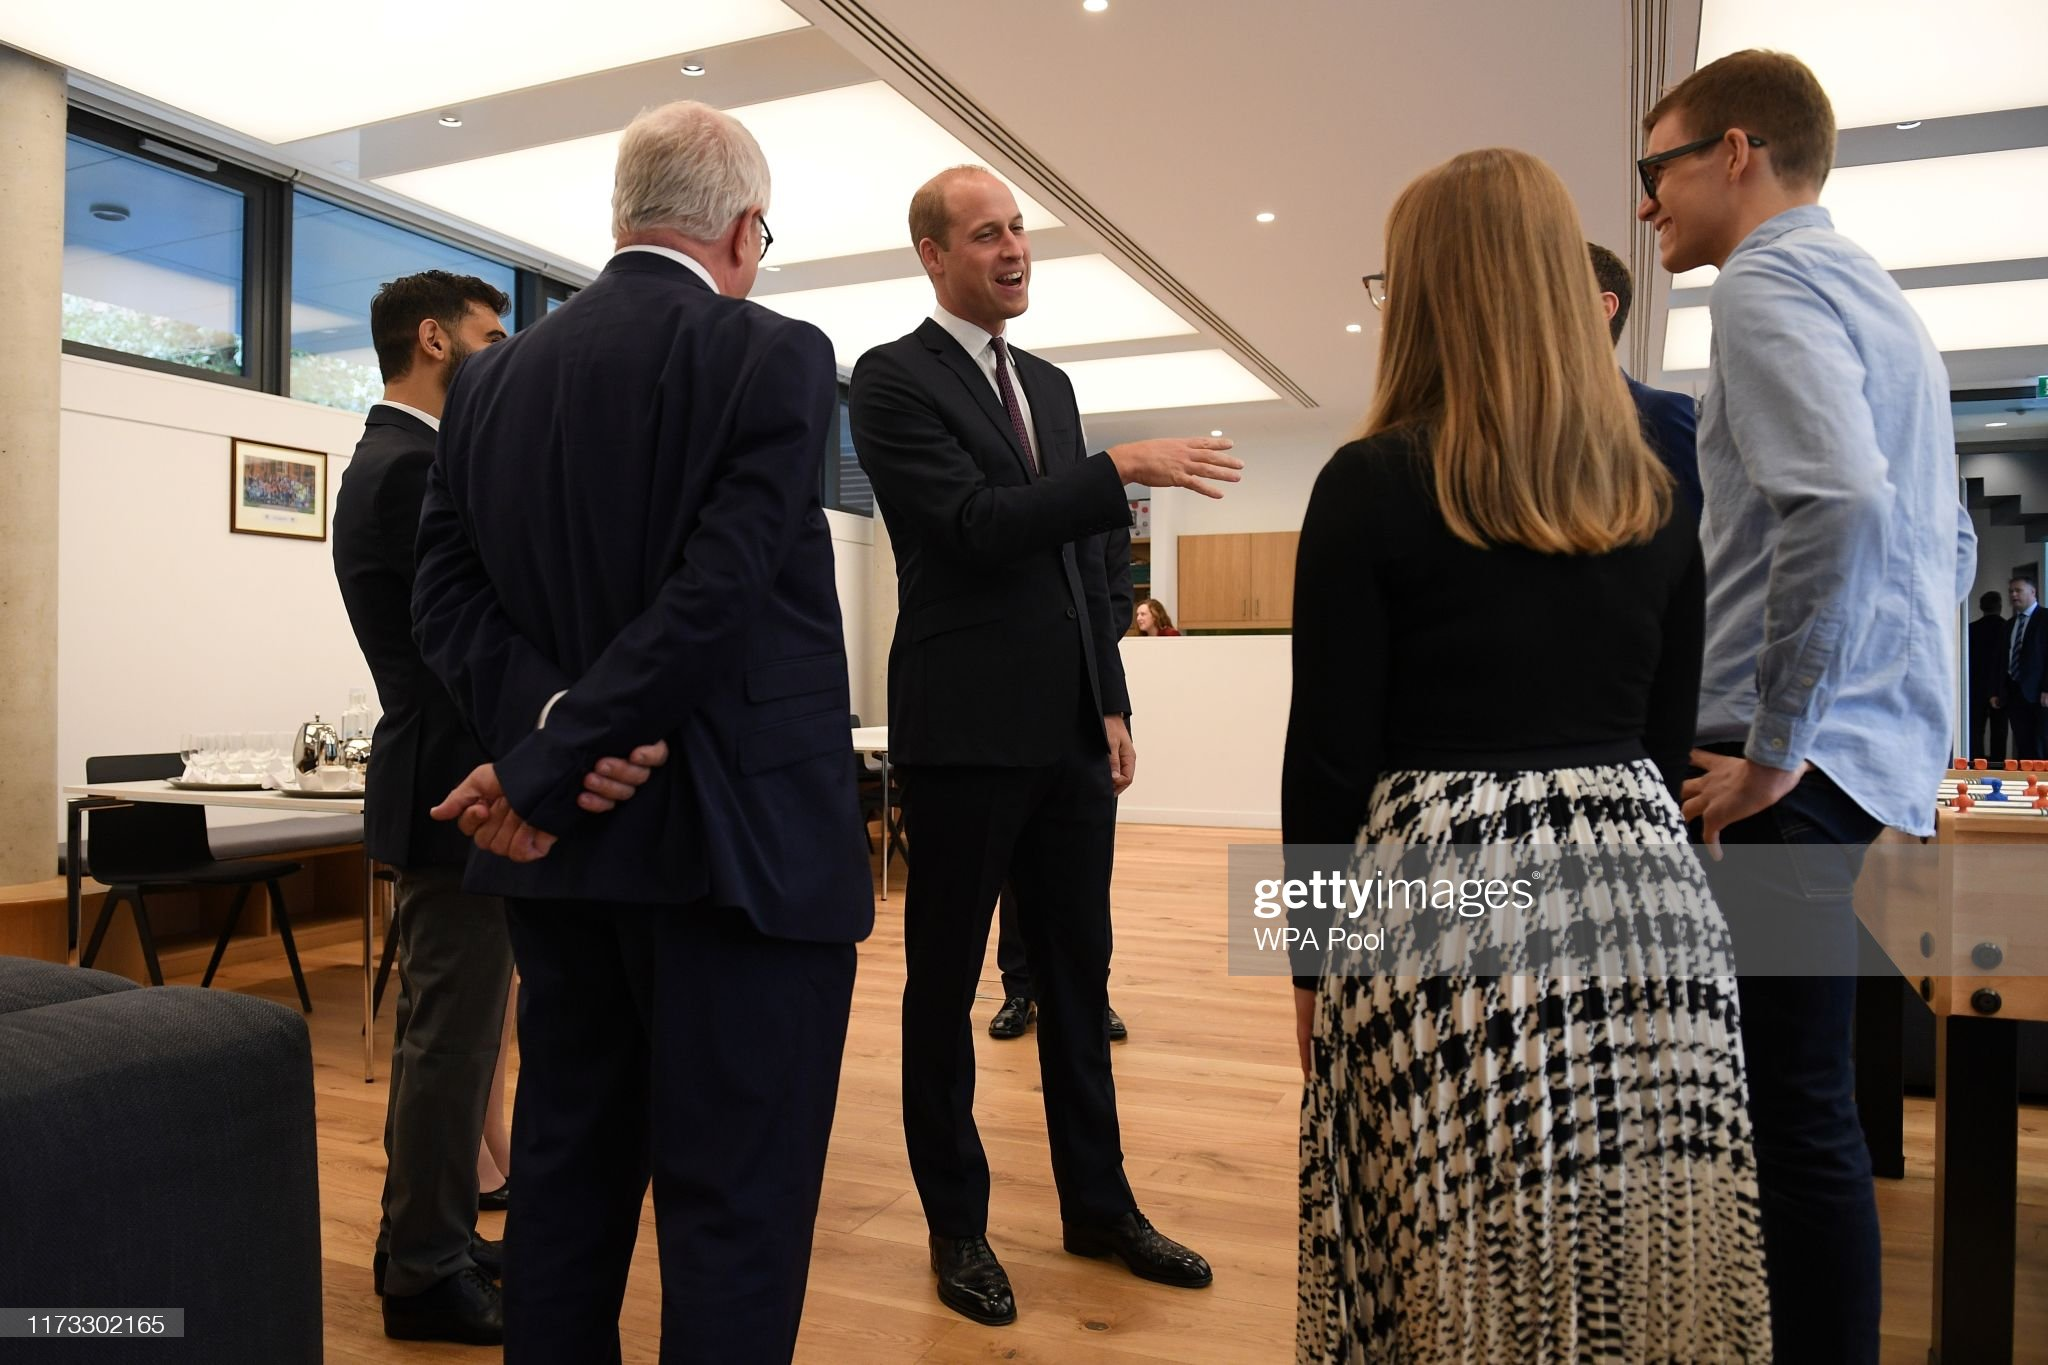 prince-william-duke-of-cambridge-meets-graduate-students-during-a-to-picture-id1173302165